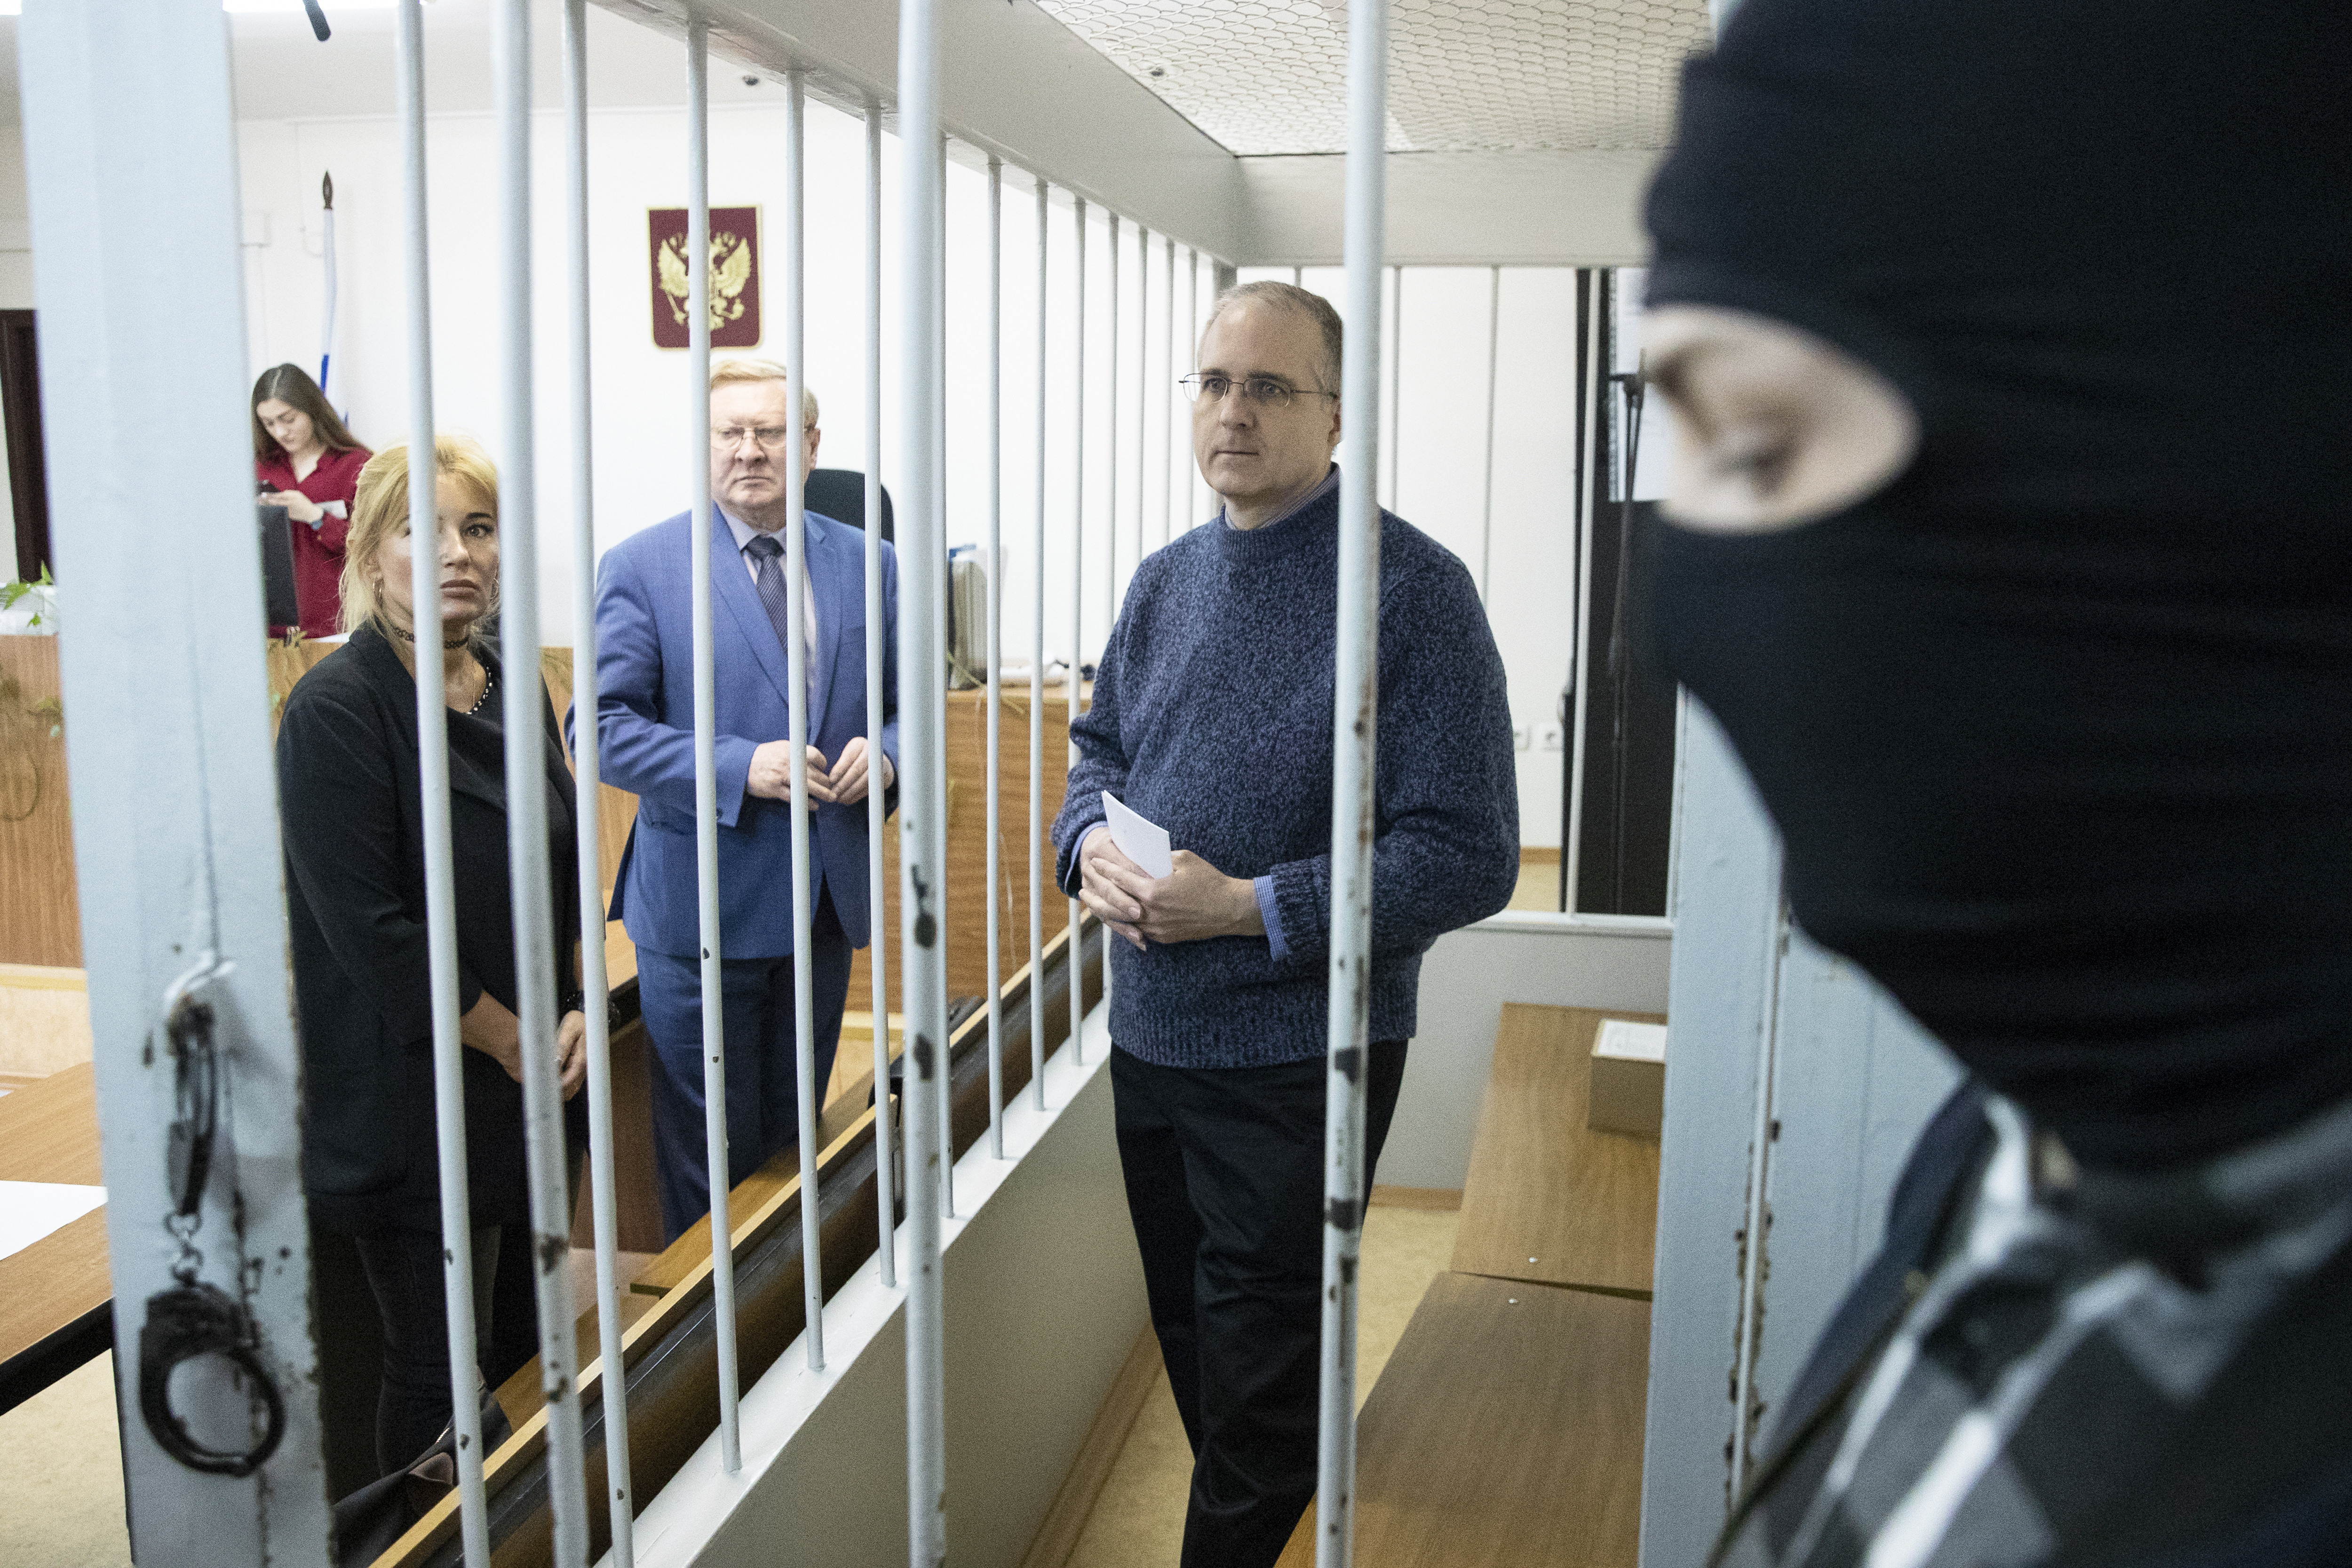 Paul Whelan, former U.S. Marine jailed in Russia: 'I am a victim of political kidnap and ransom'